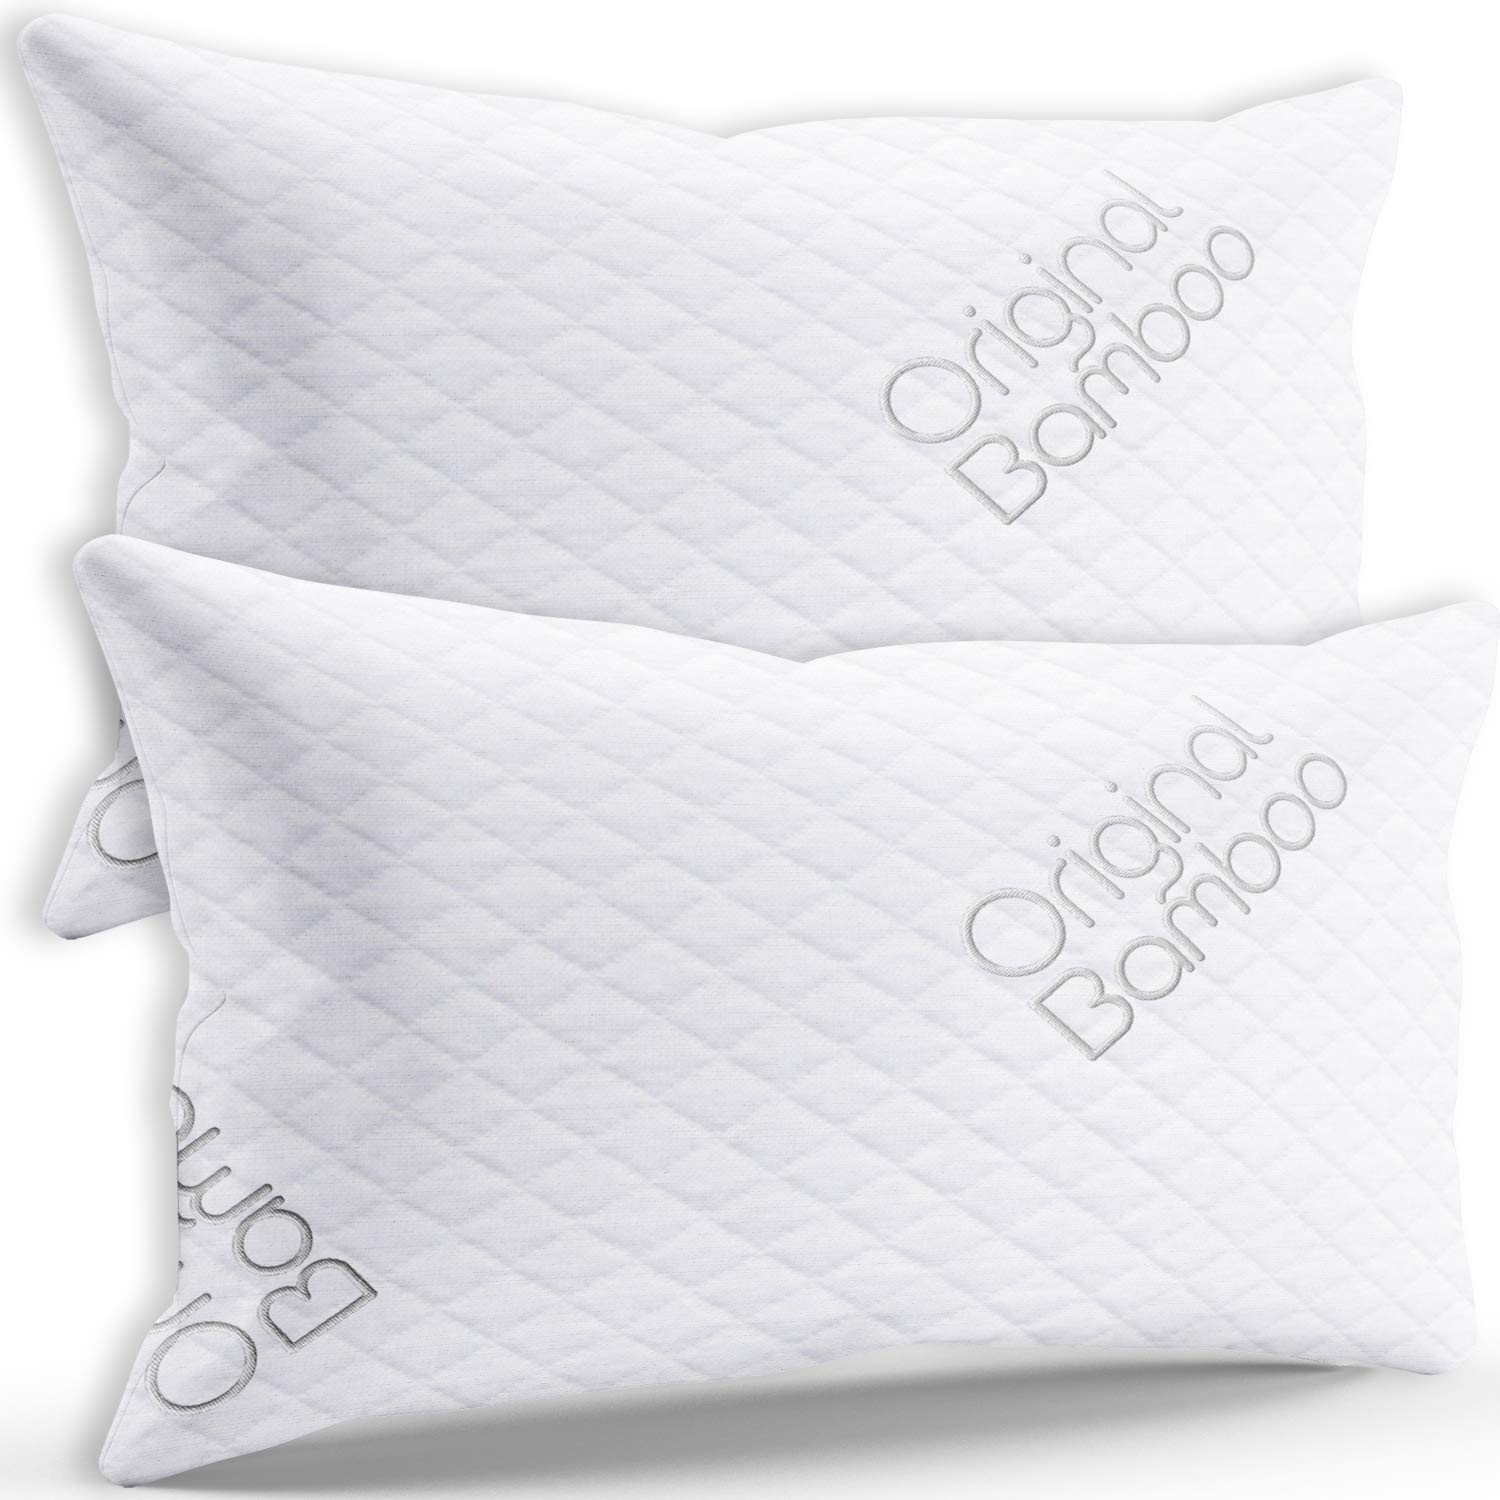 Best pillows in the UK: Catch up on